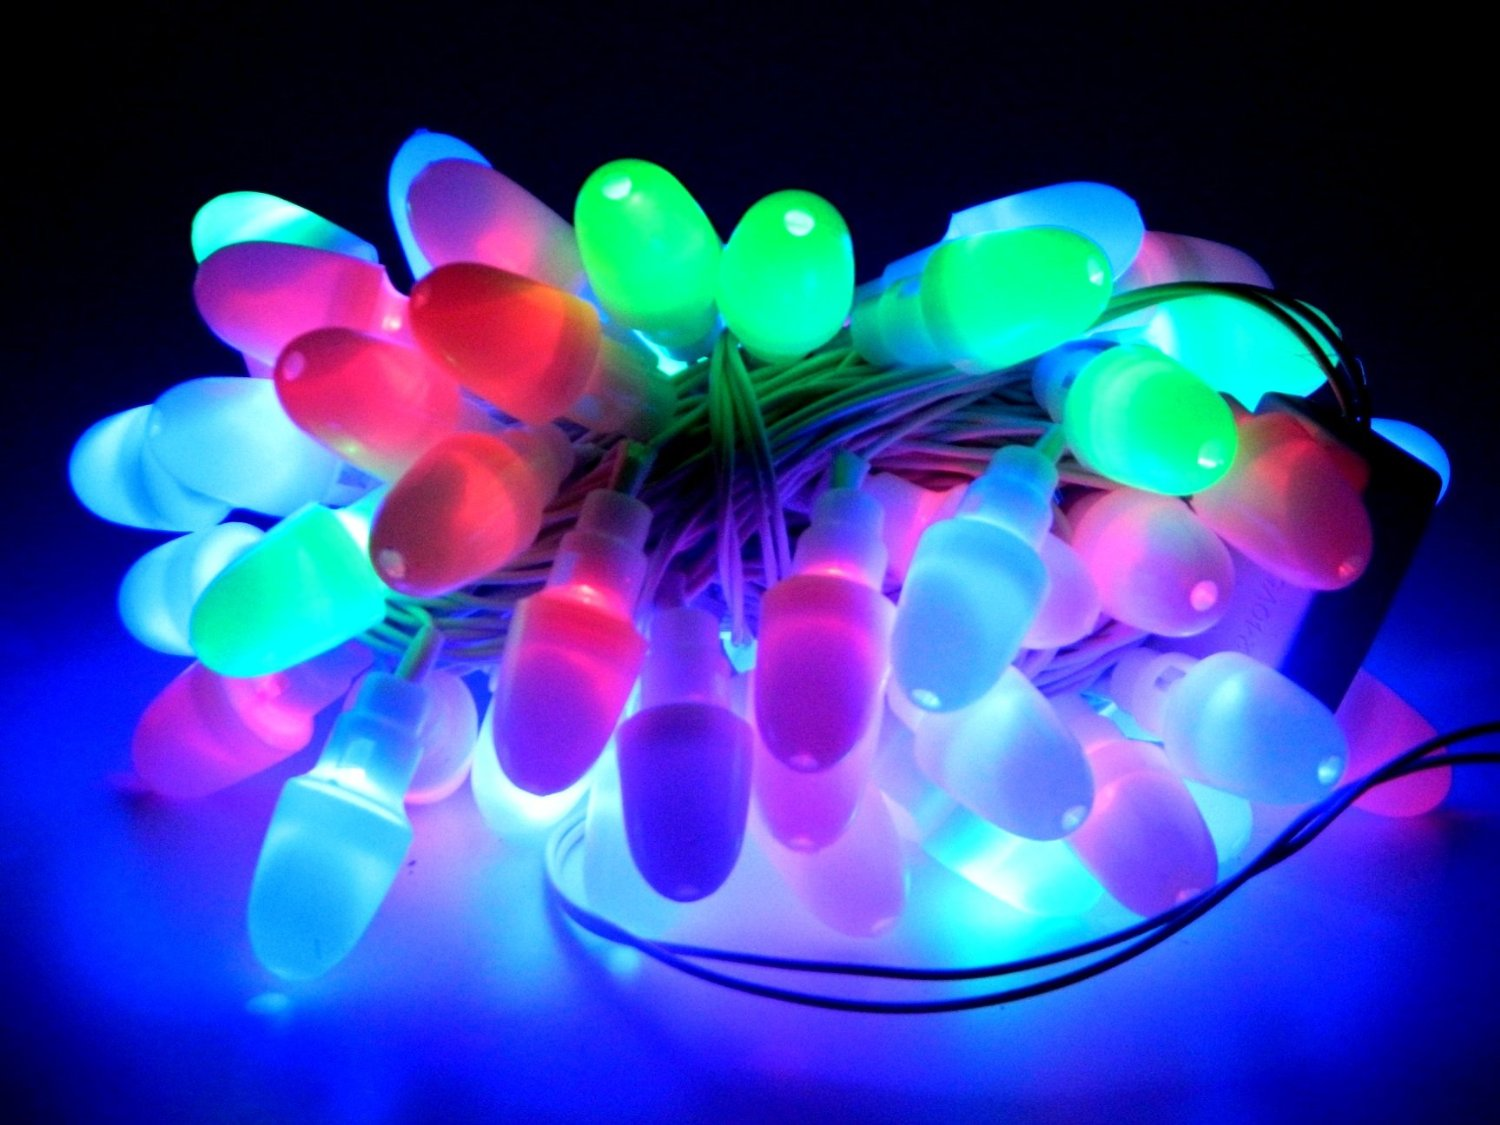 Diwali Lights Decoration Ideas 2017 [Expert Ideas] Diwali 2017 Wallpapers, Quotes, Status, DP ...